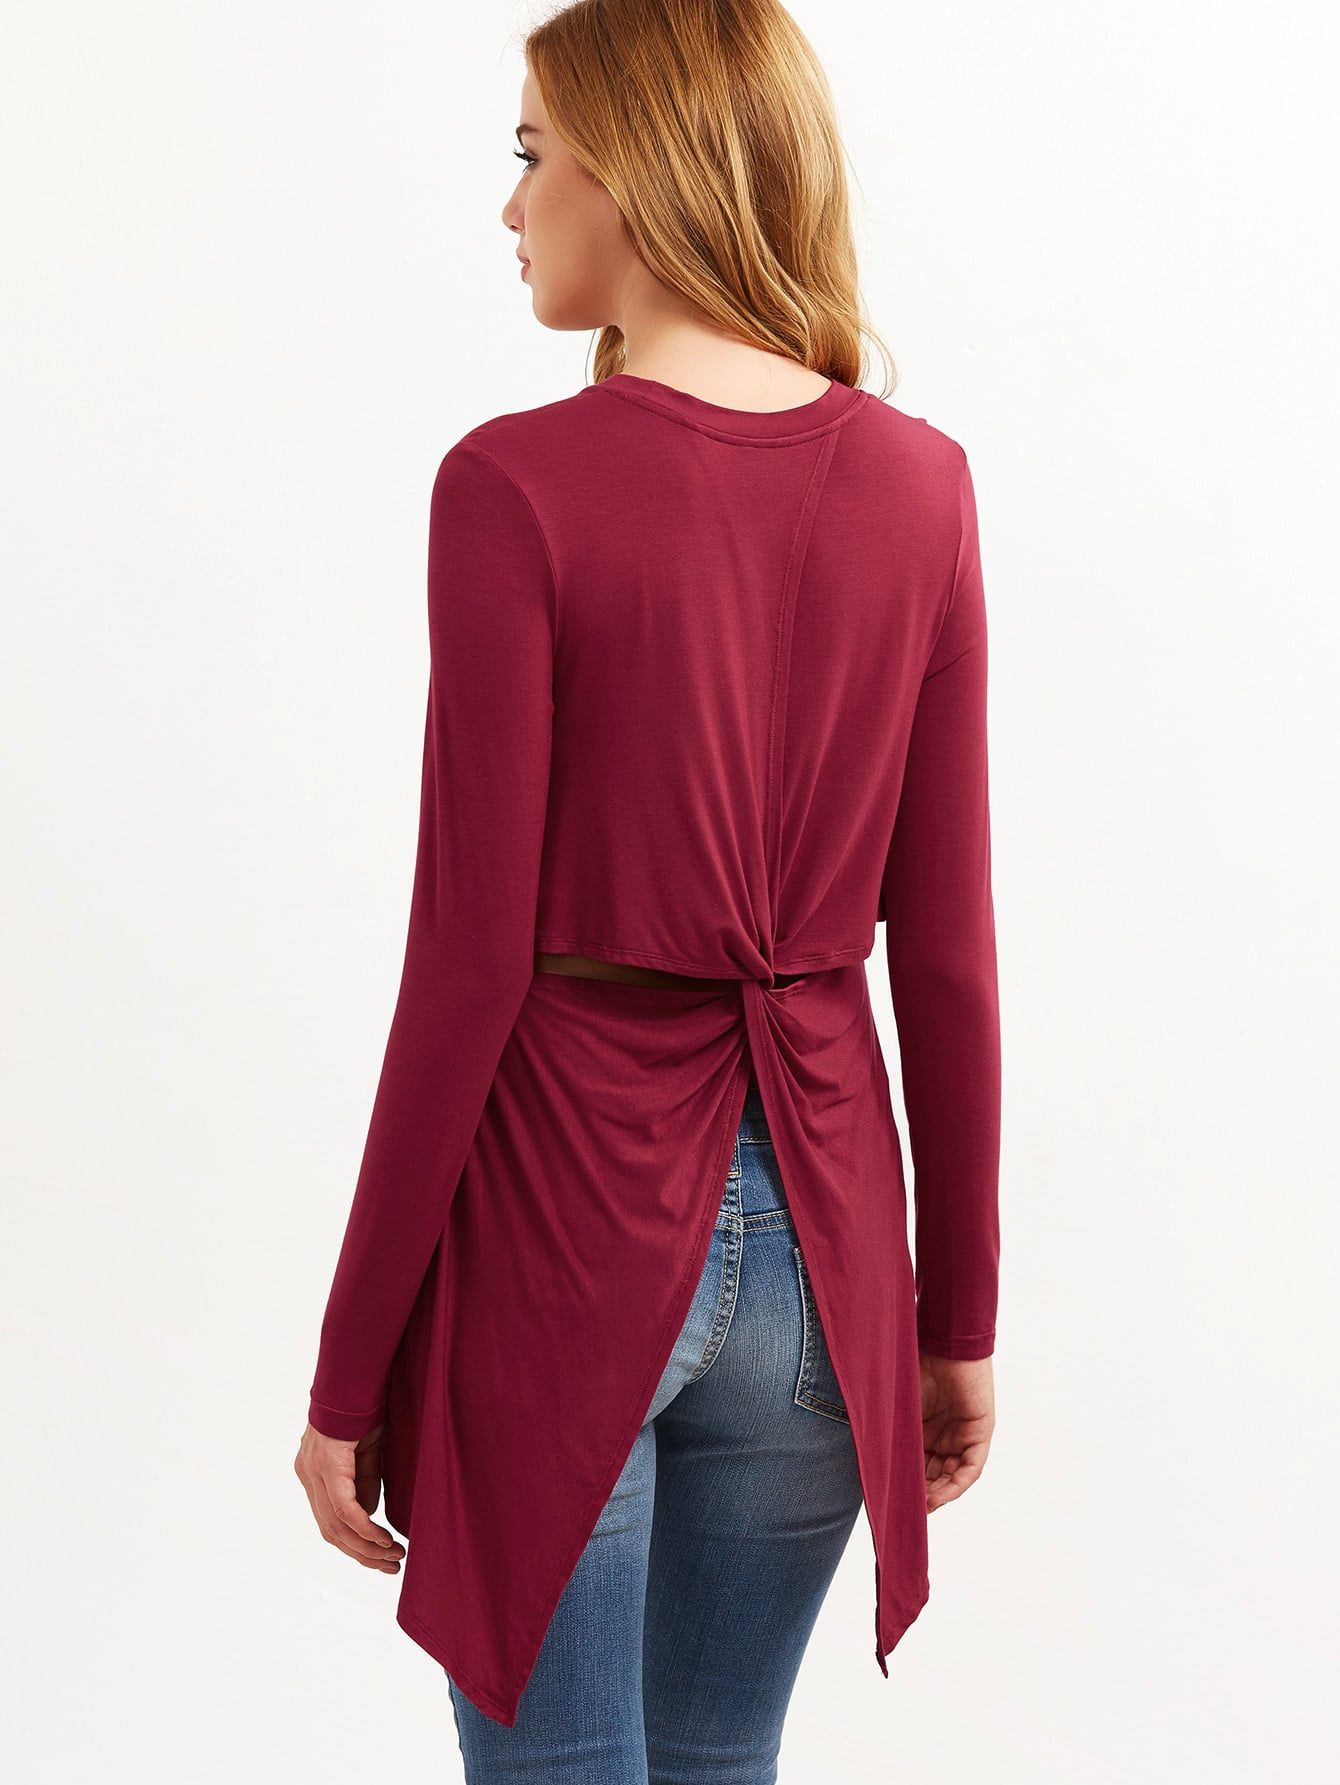 Burgundy Cutout Twist Back Asymmetric T-shirtBurgundy Cutout Twist Back Asymmetric T-shirt<br><br>color: Burgundy<br>size: L,M,S,XS